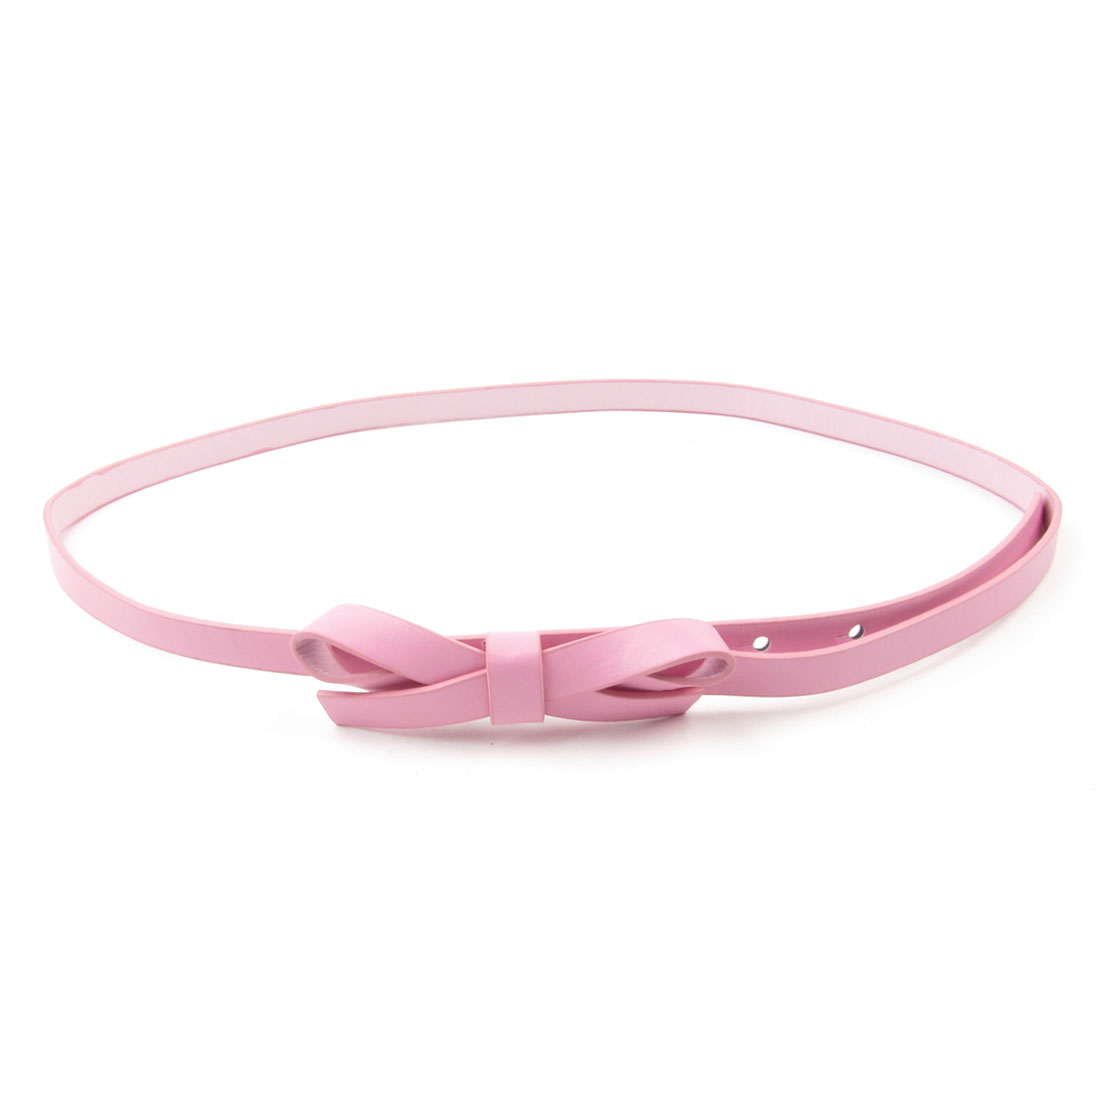 Pink Bowtie Decoration Faux Leather Skinny Waistband Belt for Women